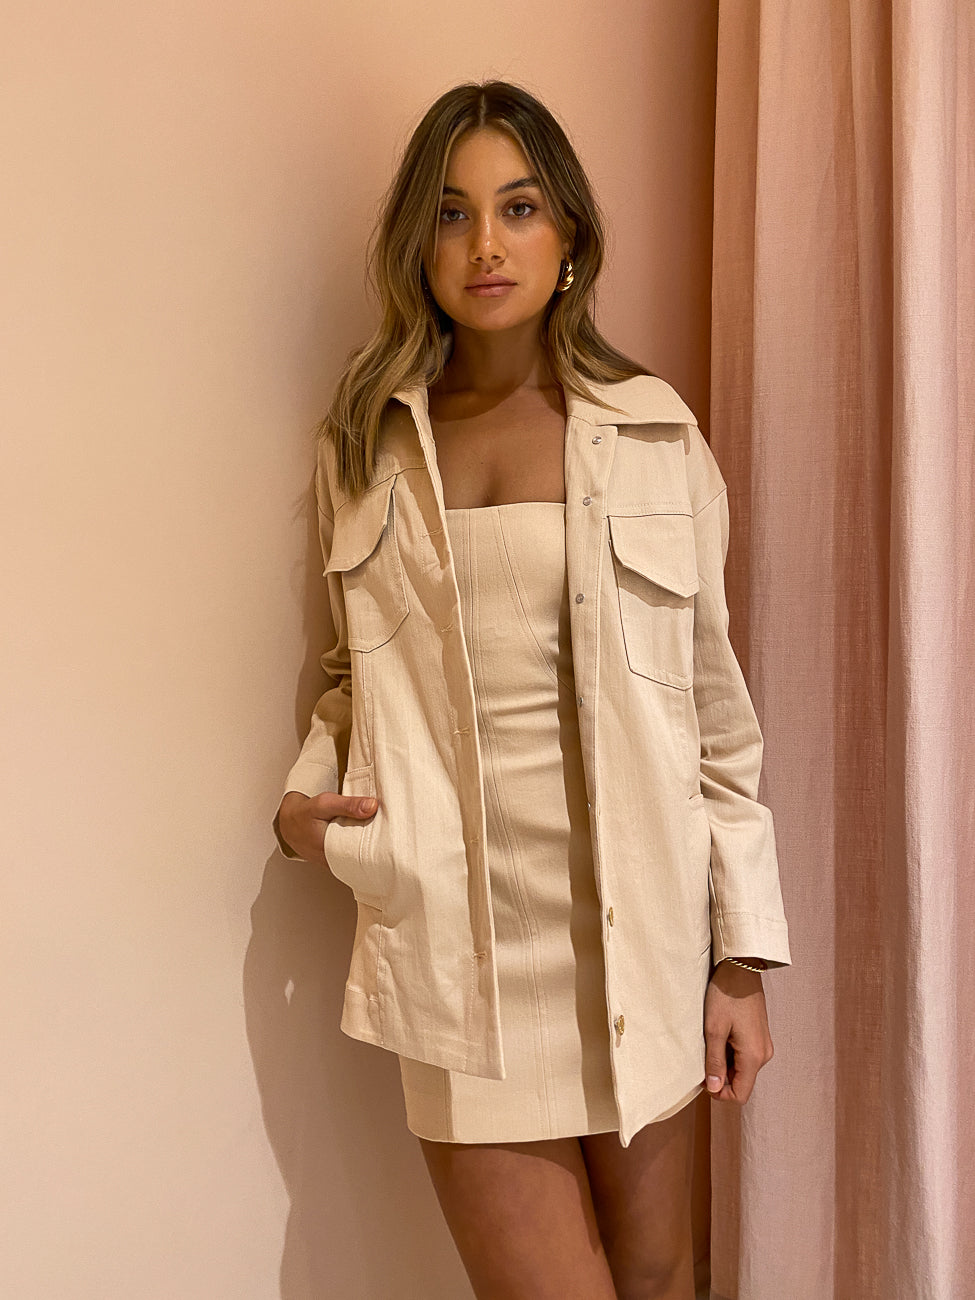 Manning Cartell Fangirl Jacket in Blush